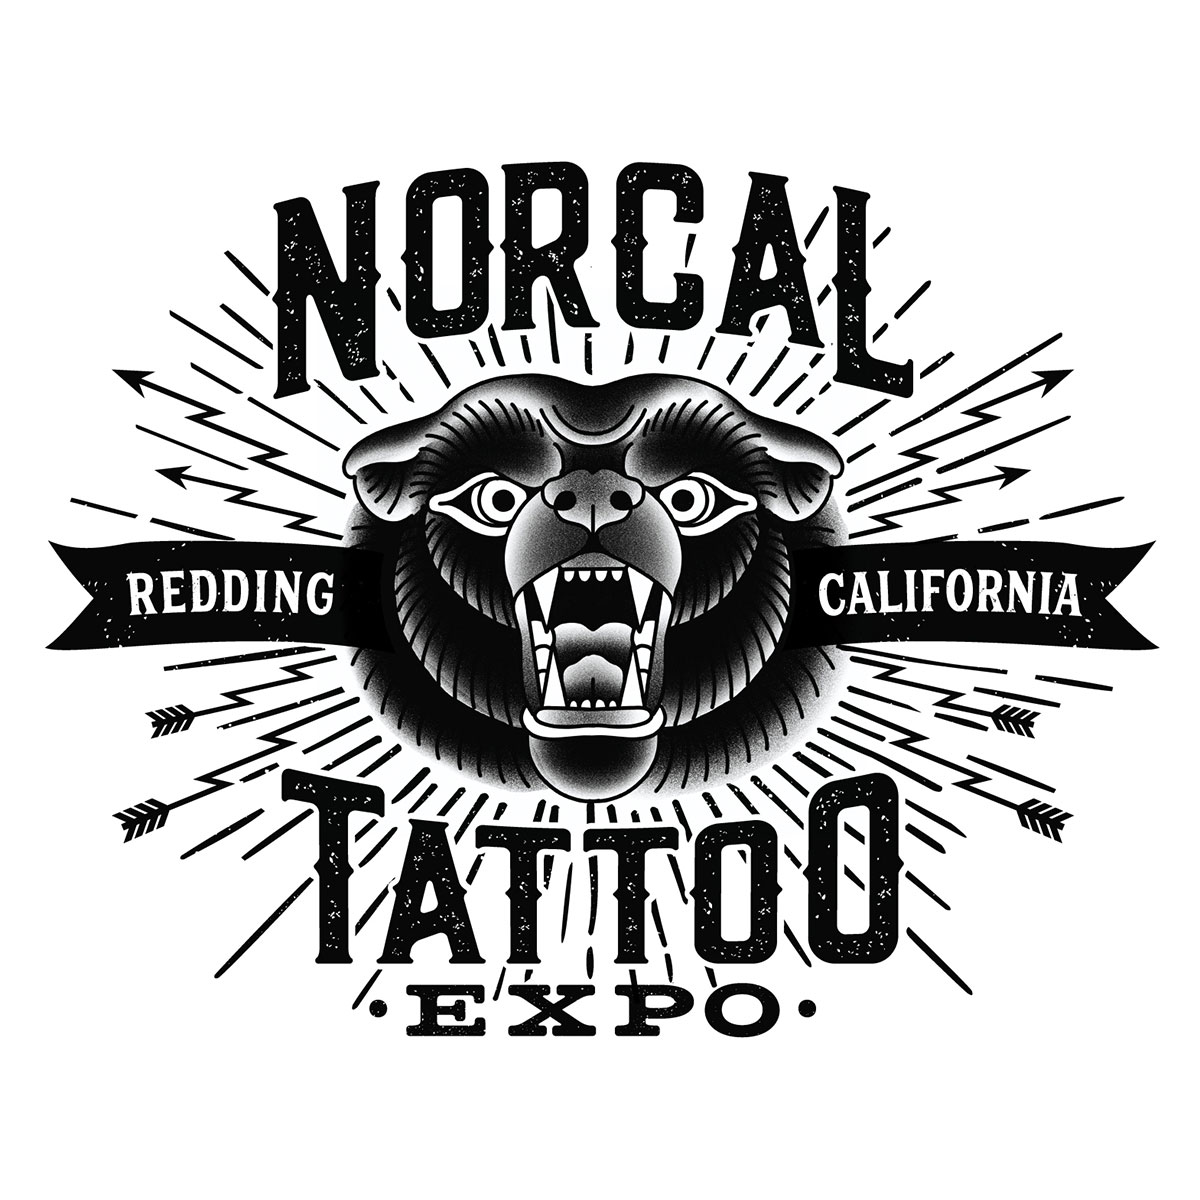 NorCal Tattoo Expo